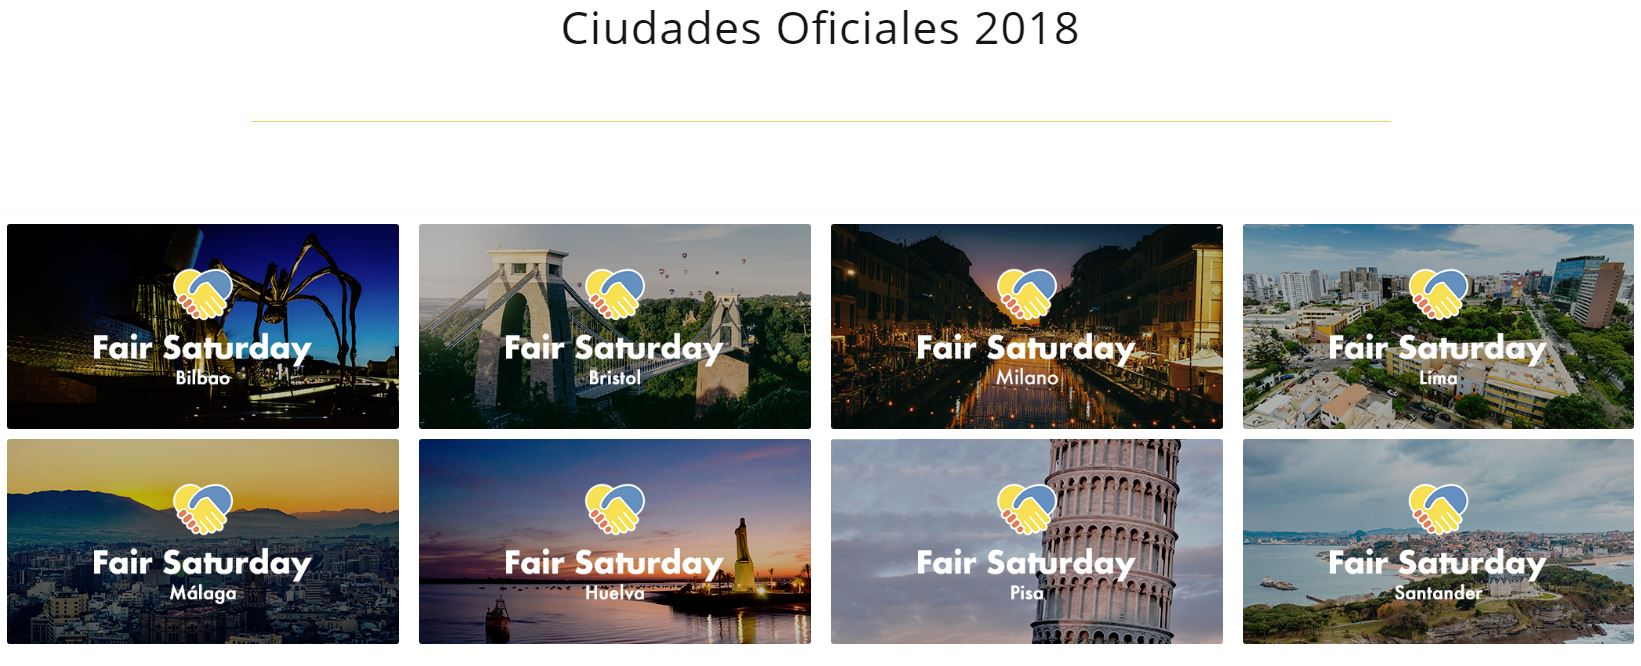 ciudades-Fair-Saturday-2018